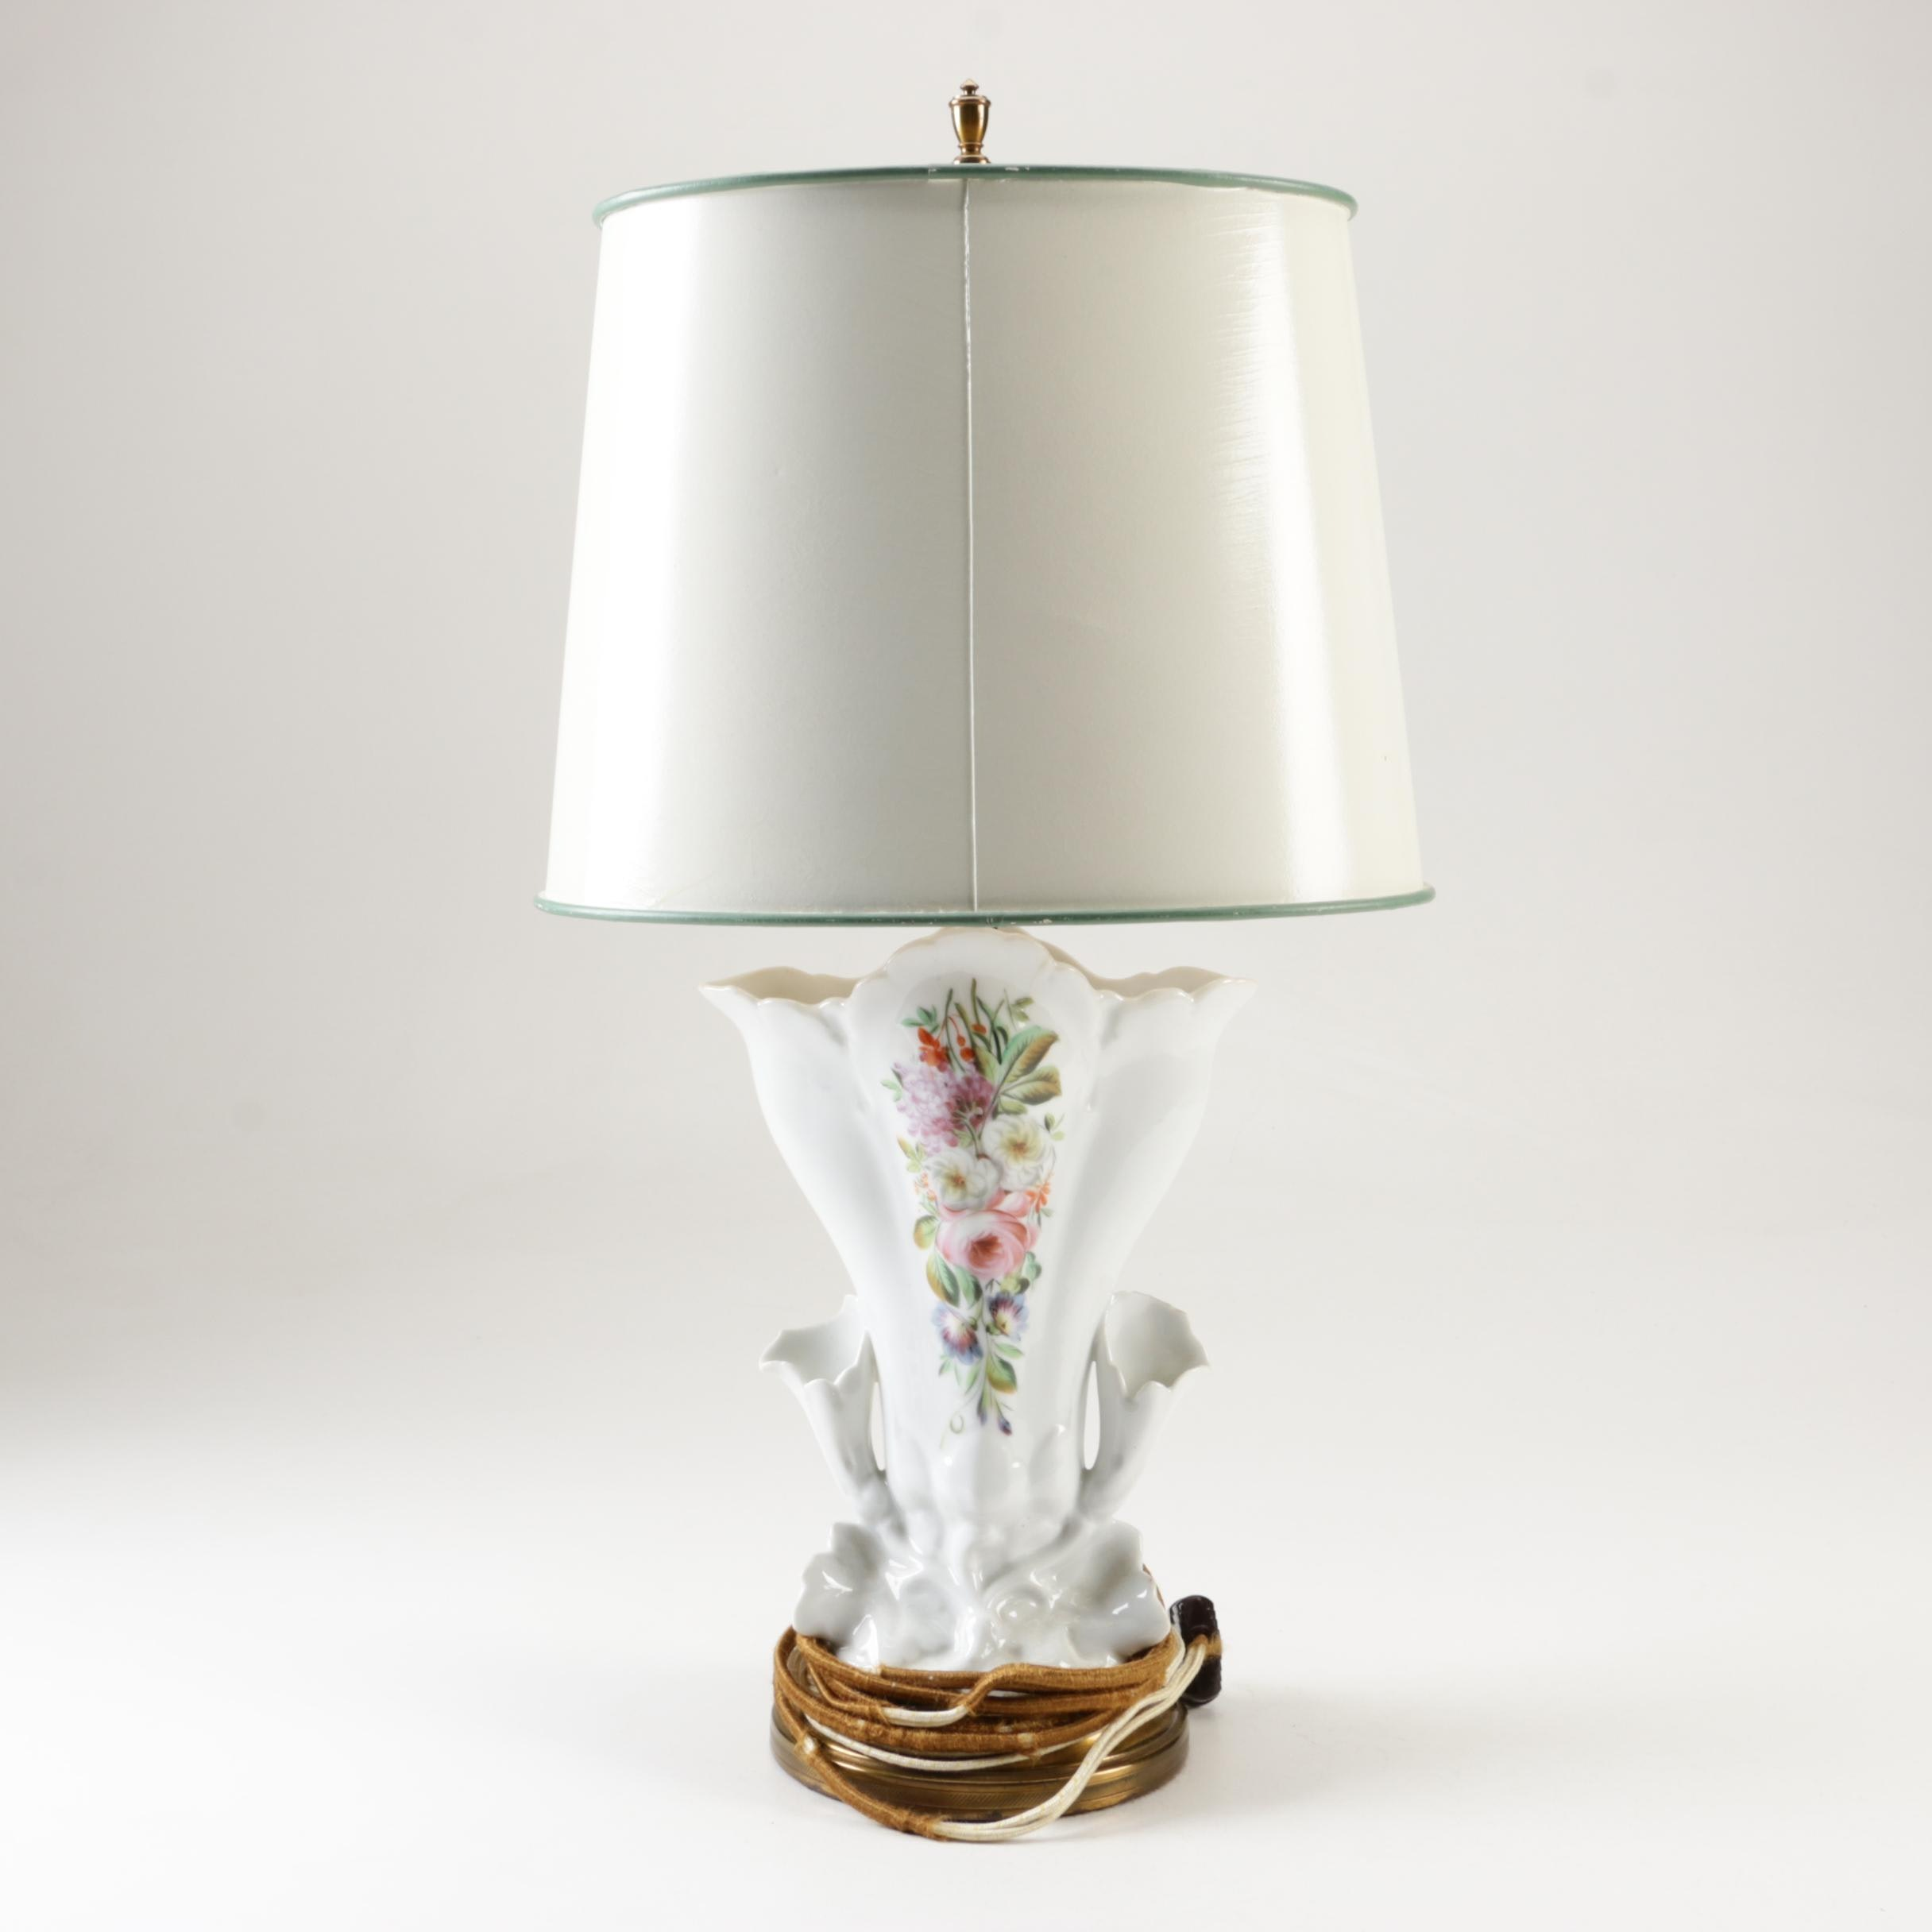 Vintage Porcelain Spill Vase Table Lamp with Shade